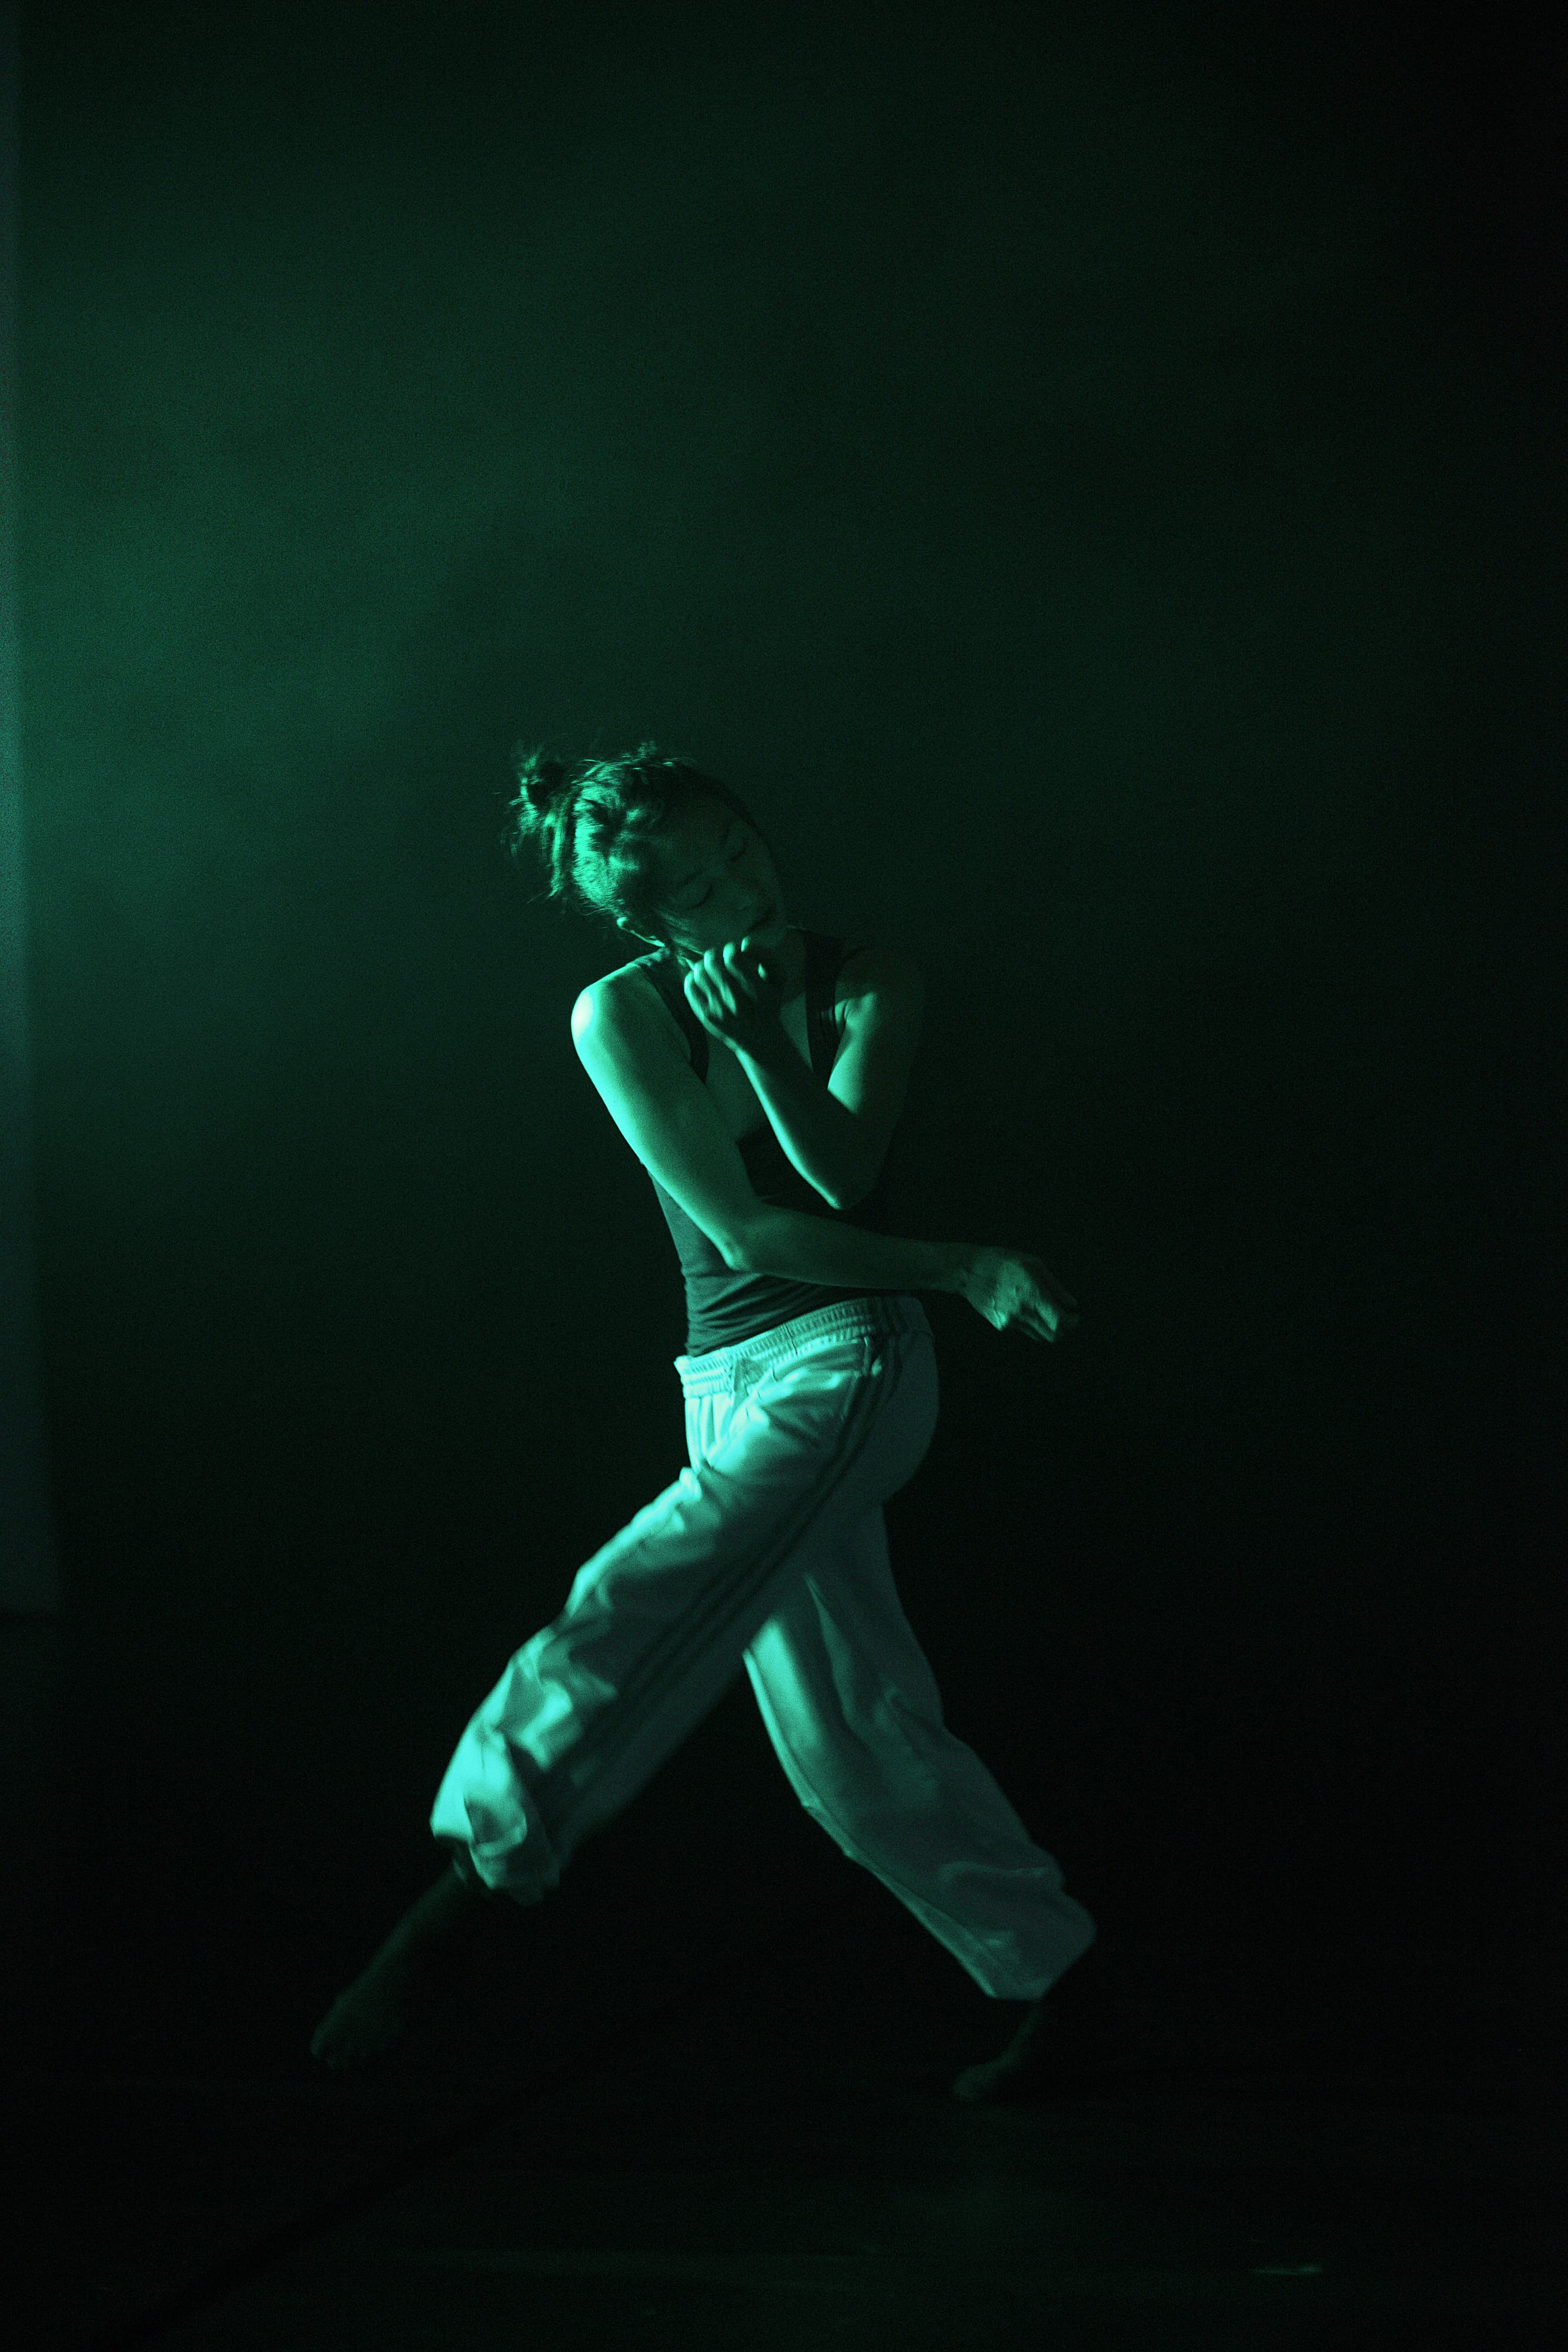 Empathy by Neon Dance. Photo by Tonje Thilesen